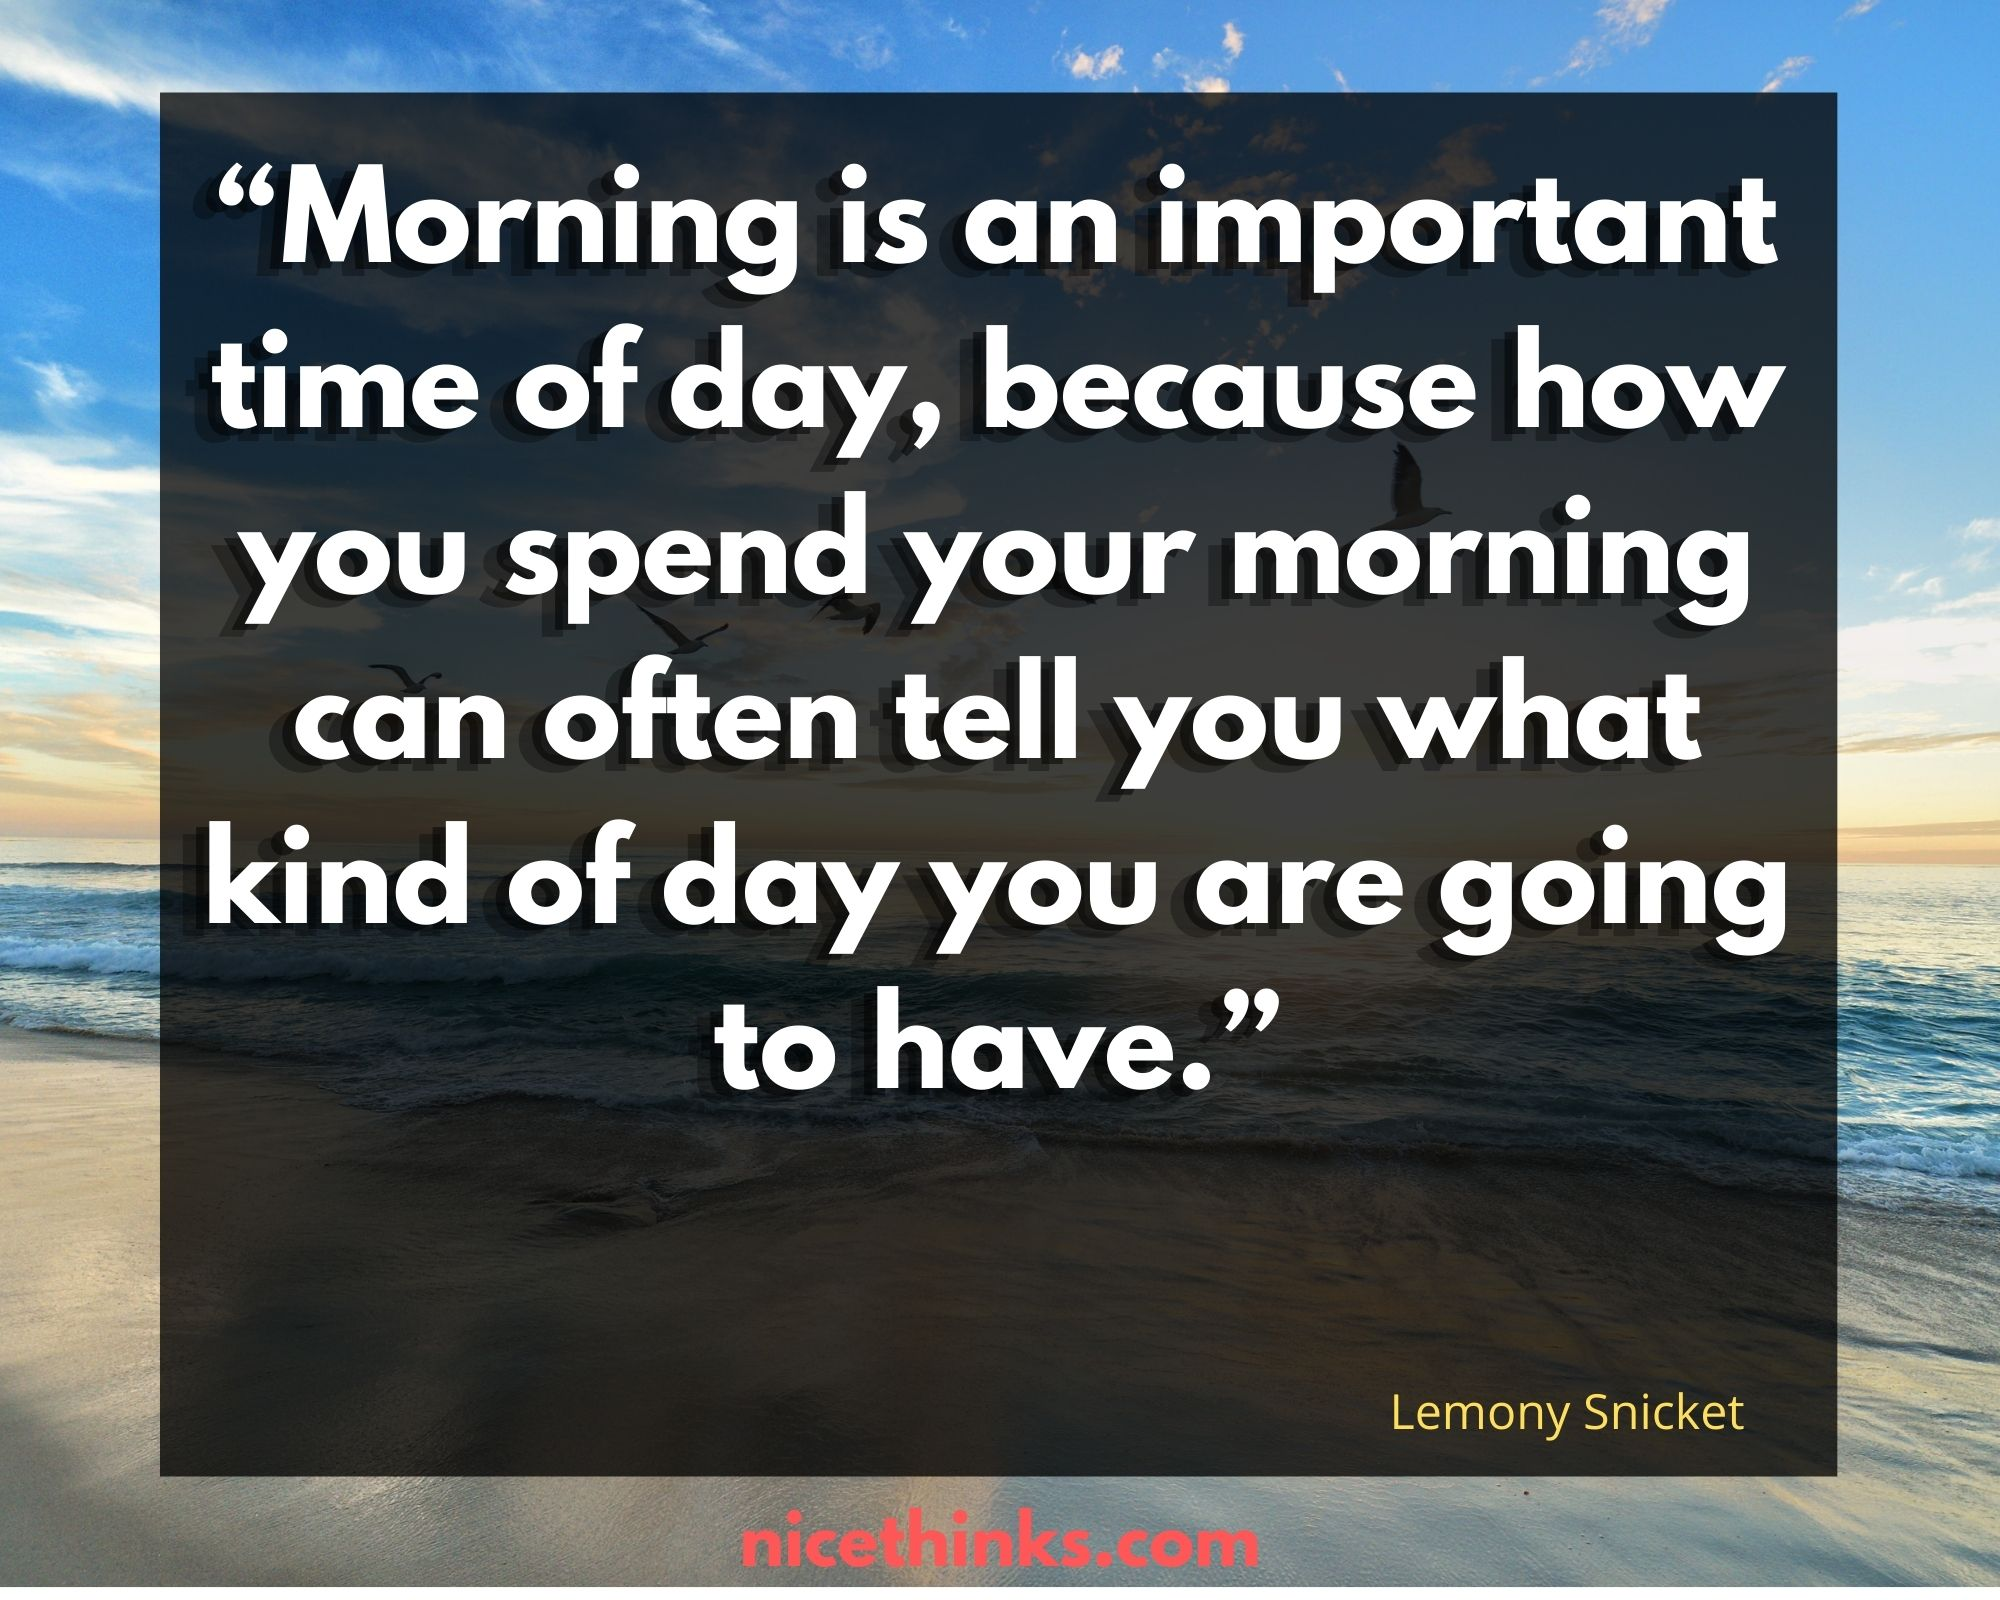 Quotes by Lemony Snicket